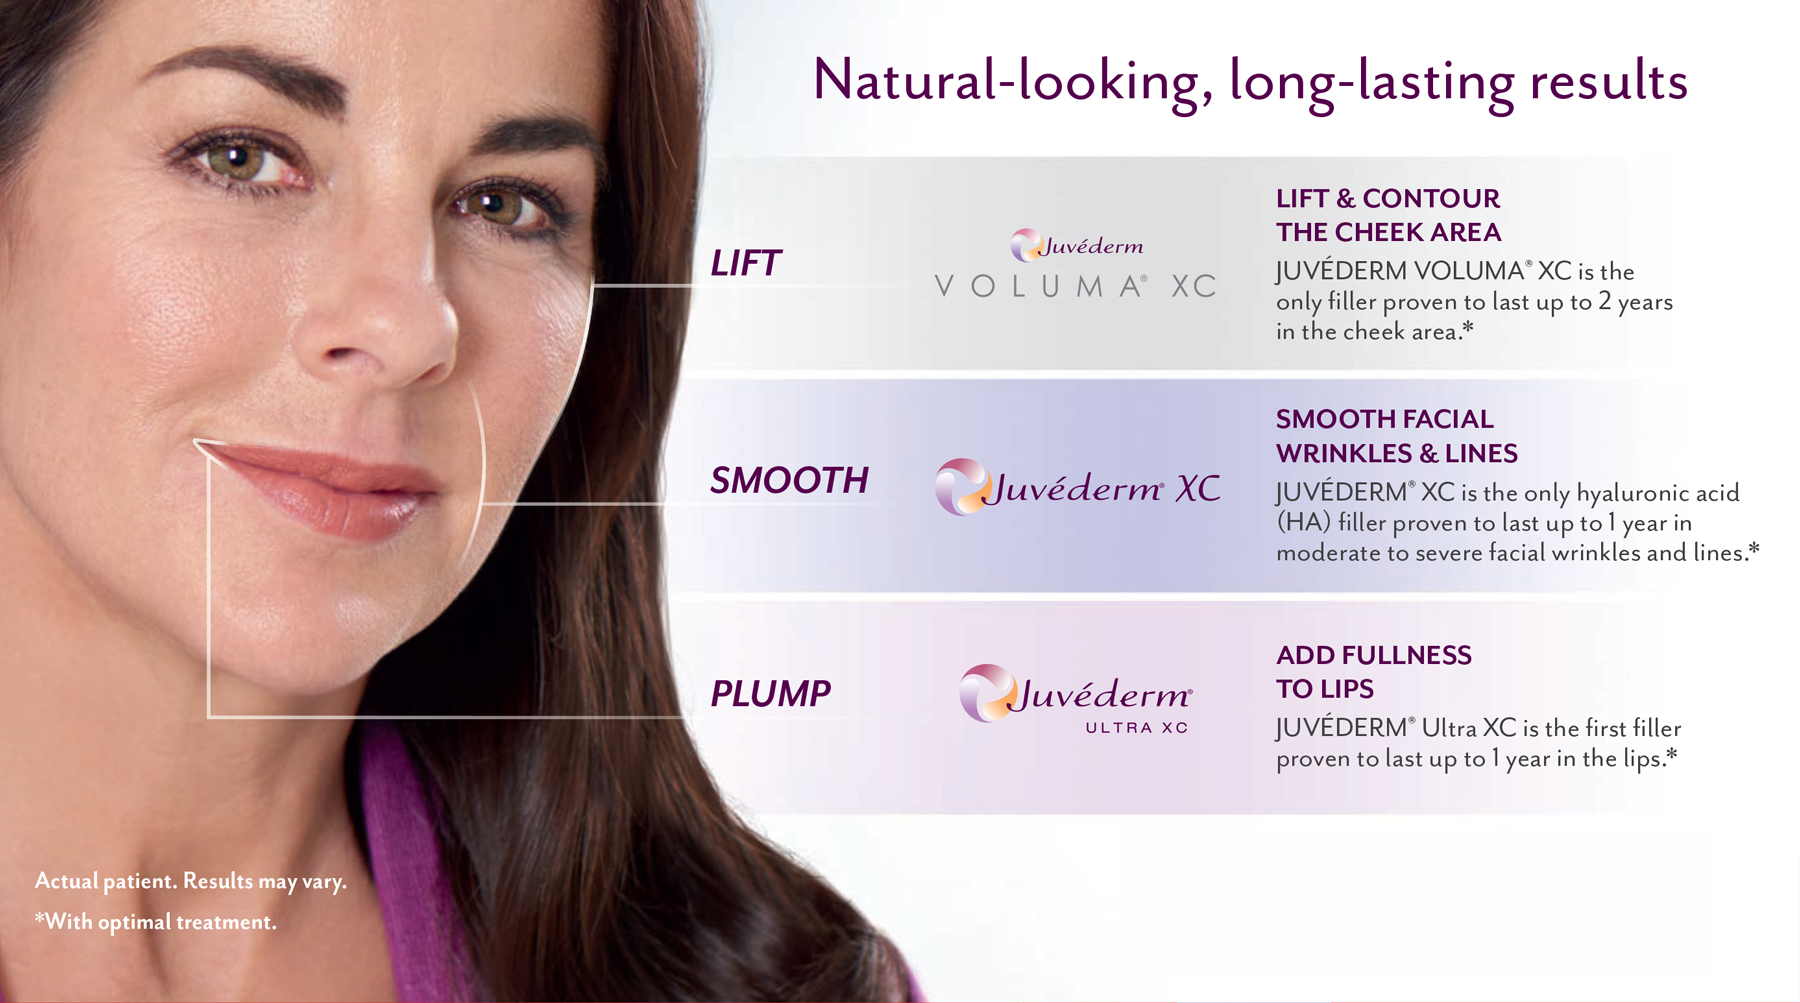 Medical Laser Solutions - Juvederm Products